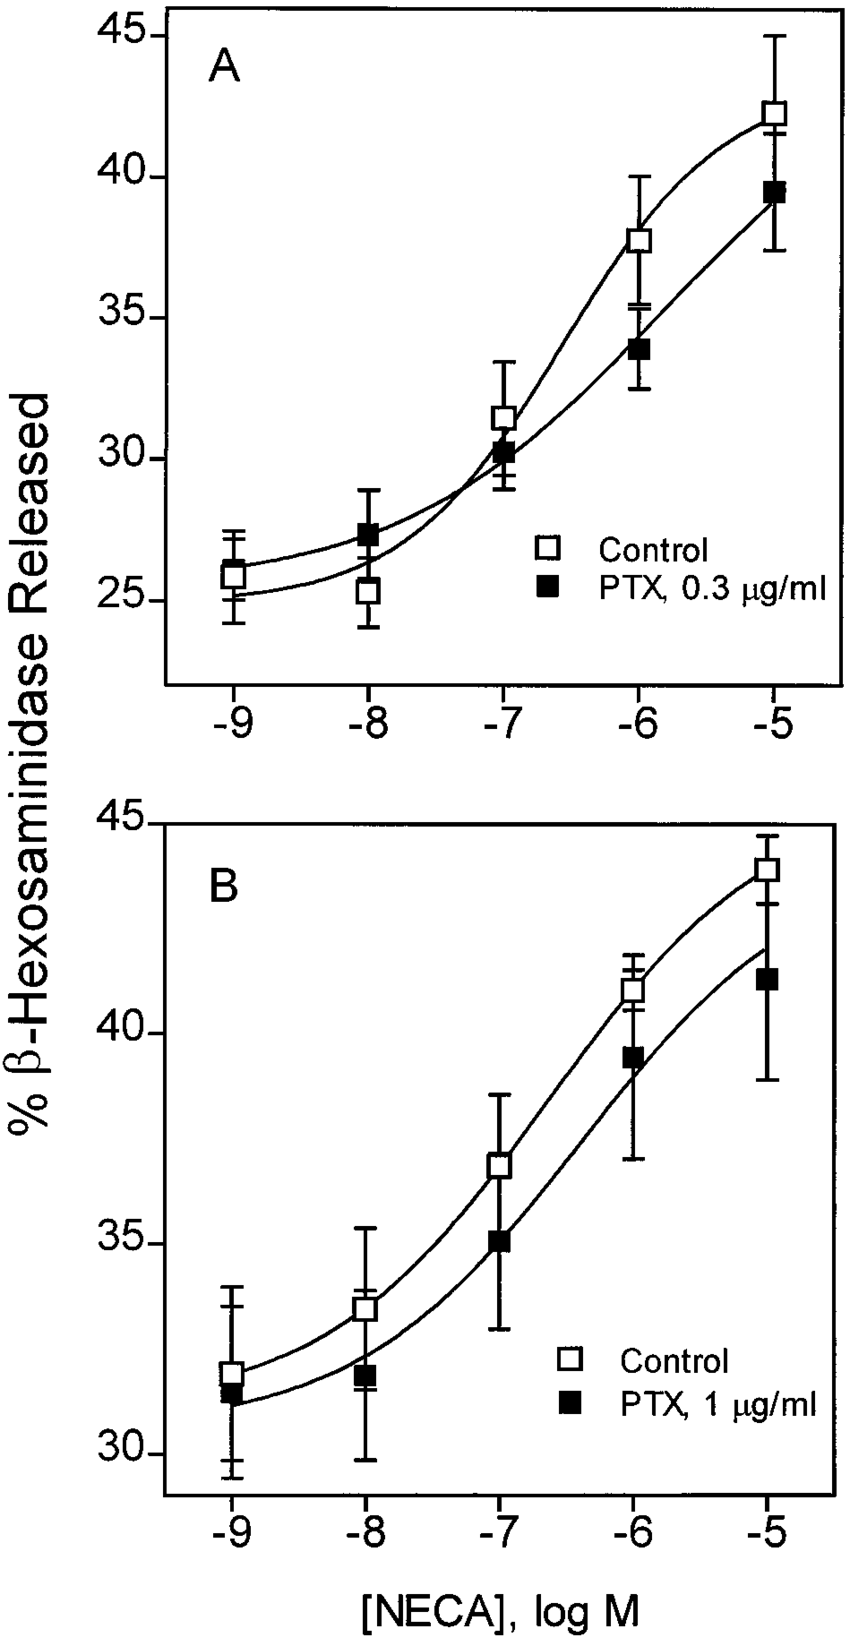 medium resolution of effect of pretreatment of br cells with pertussis toxin ptx on neca stimulated degranulation cells were pretreated for 24 hr with 0 3 g ml a or 1 g ml